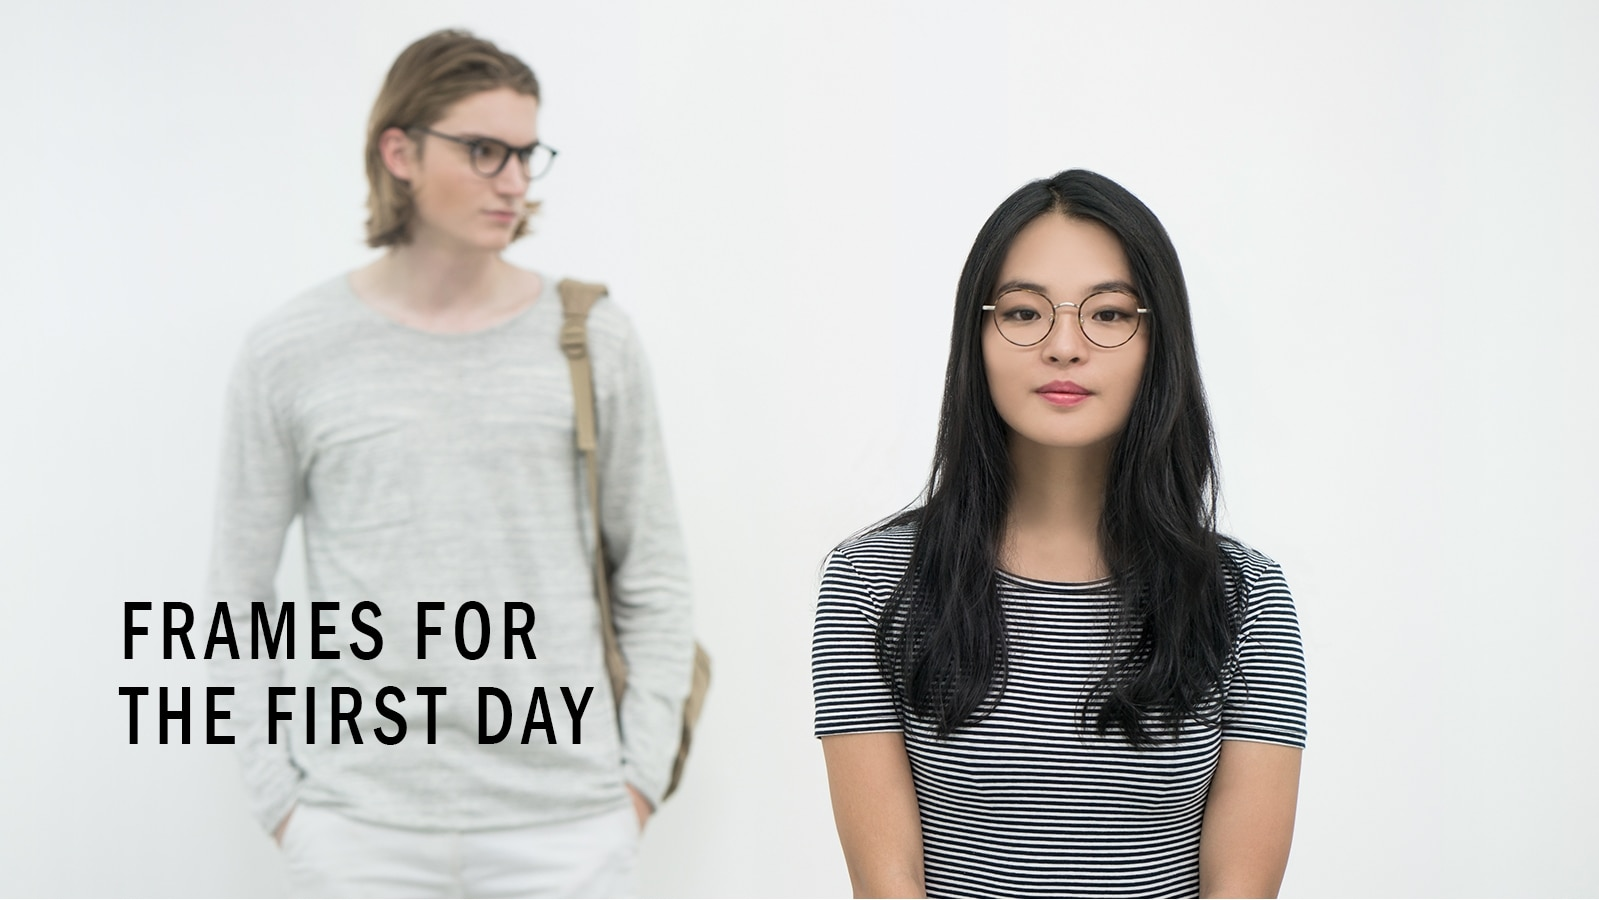 Frames for the first day